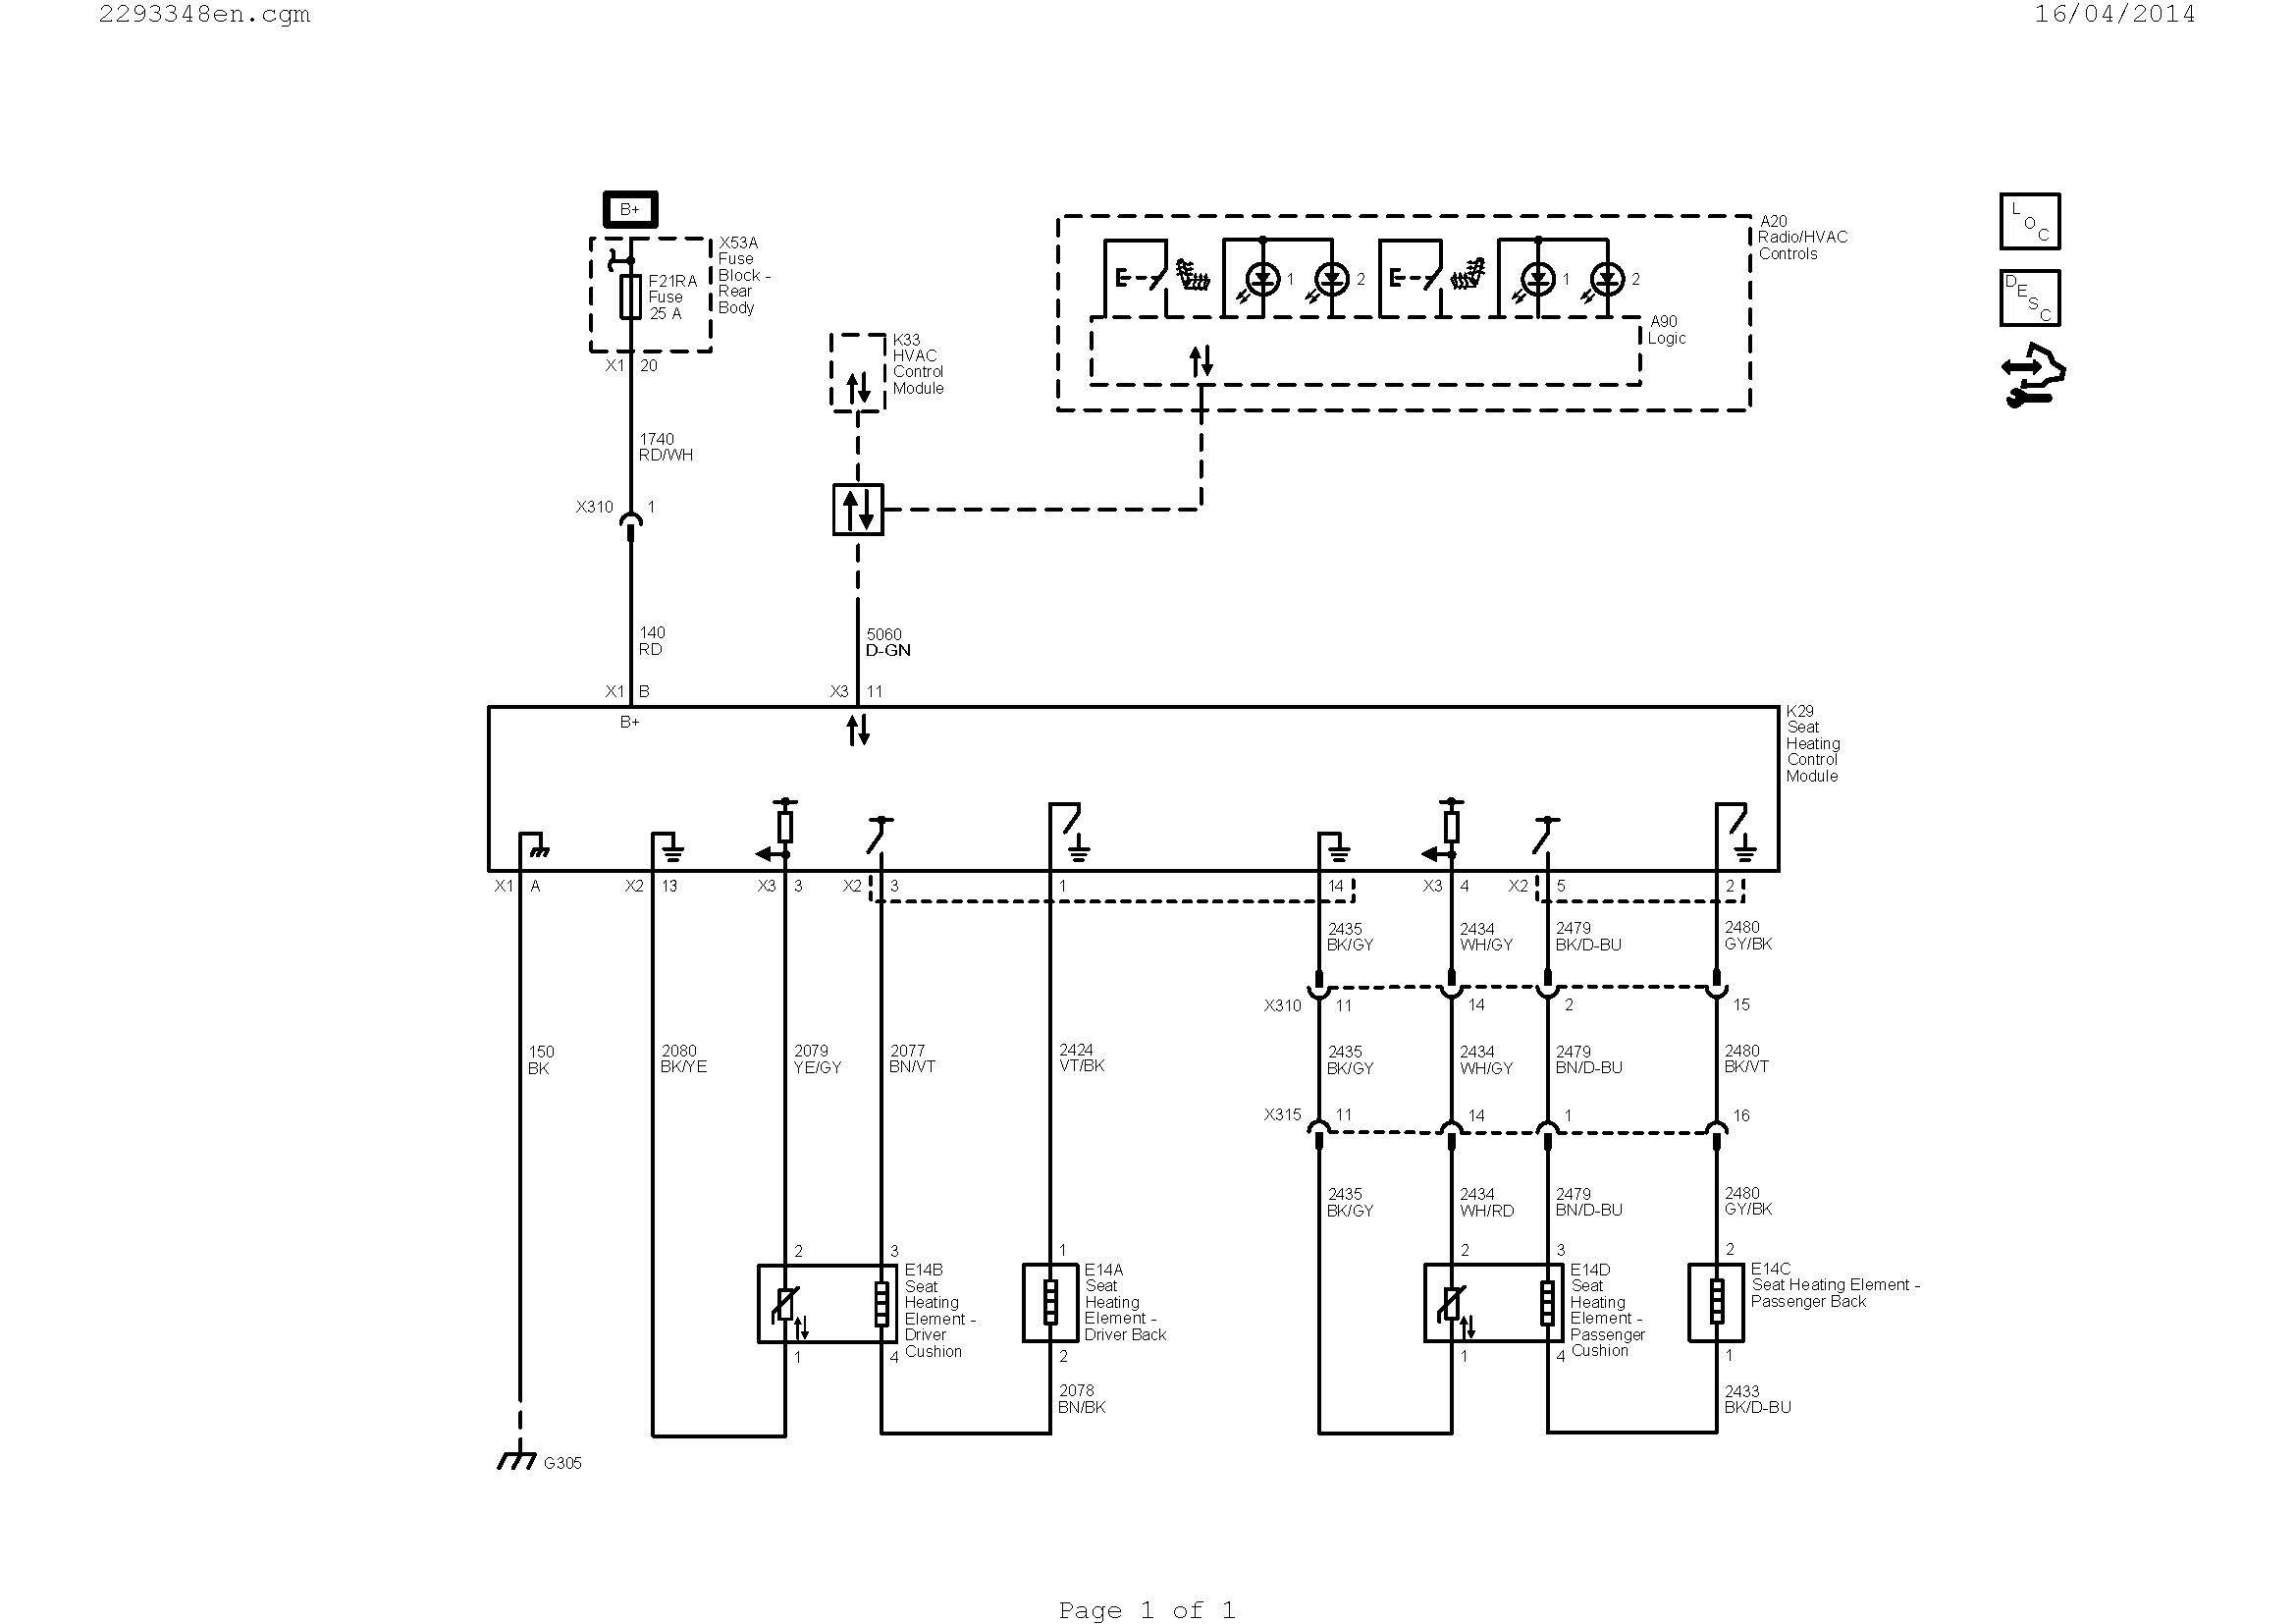 wb21x5243 wiring diagram - cad wiring diagram symbols new mechanical  engineering diagrams hvac free electrical wiring